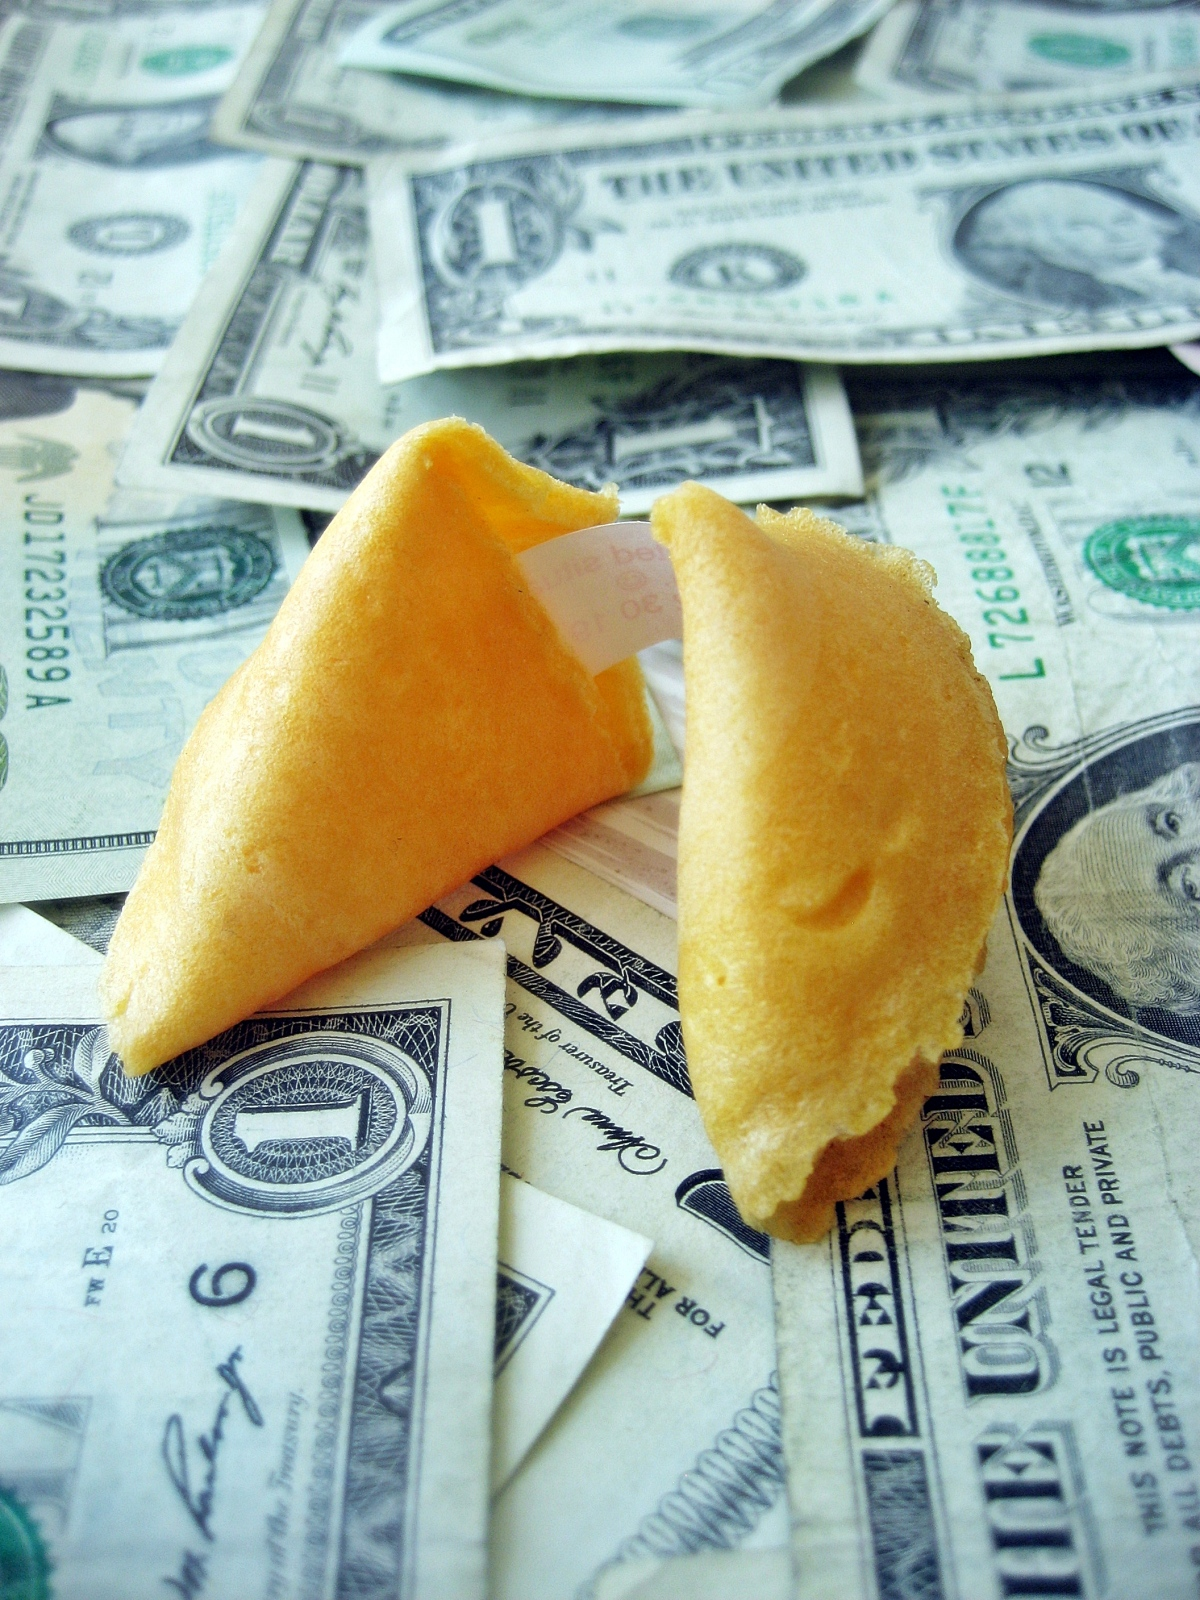 fortune cookie sitting on a pile of money